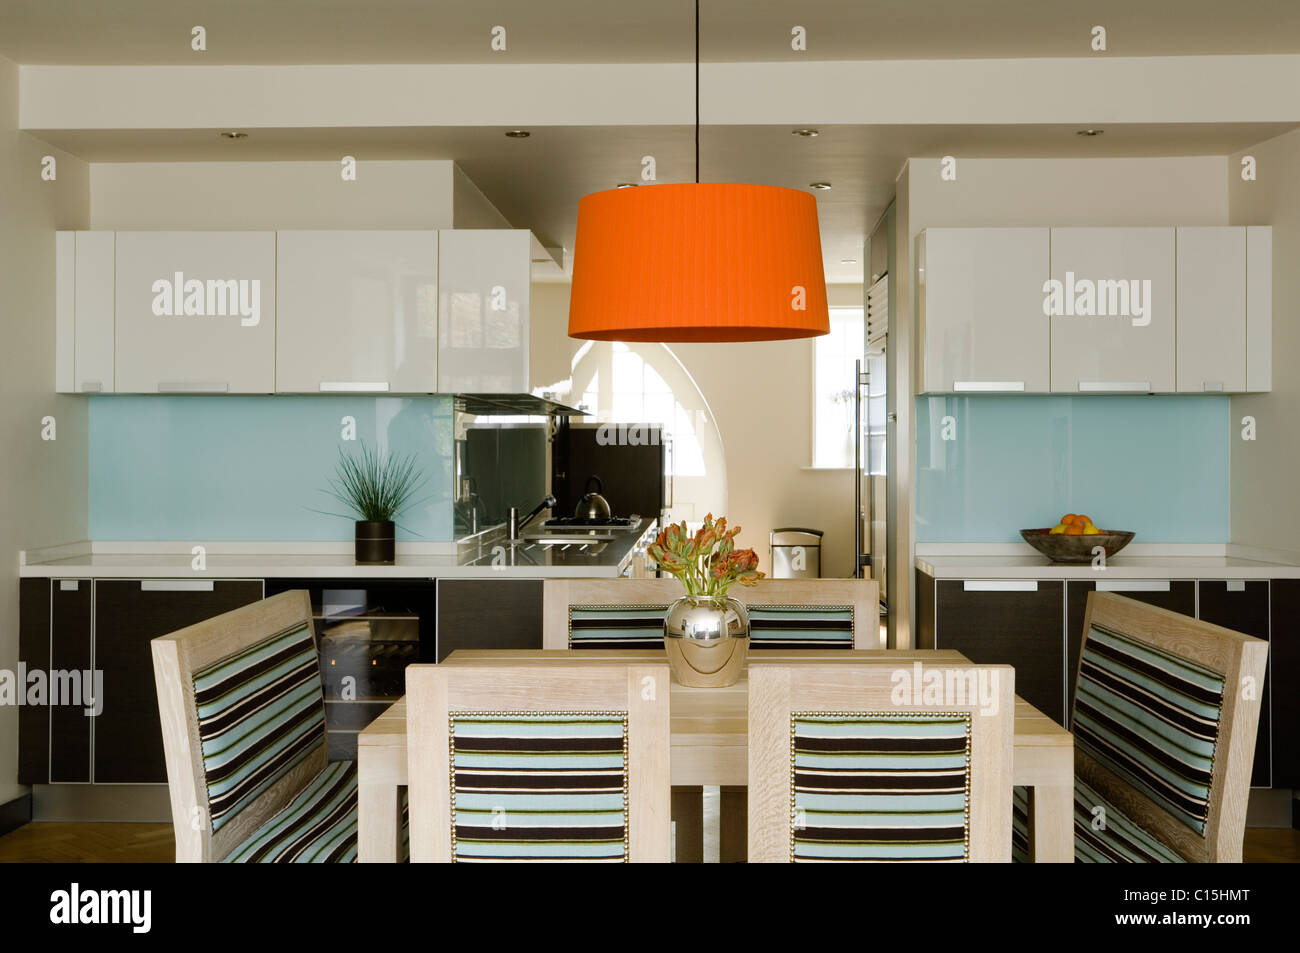 Large orange lampshade above dining table in open plan kitchen